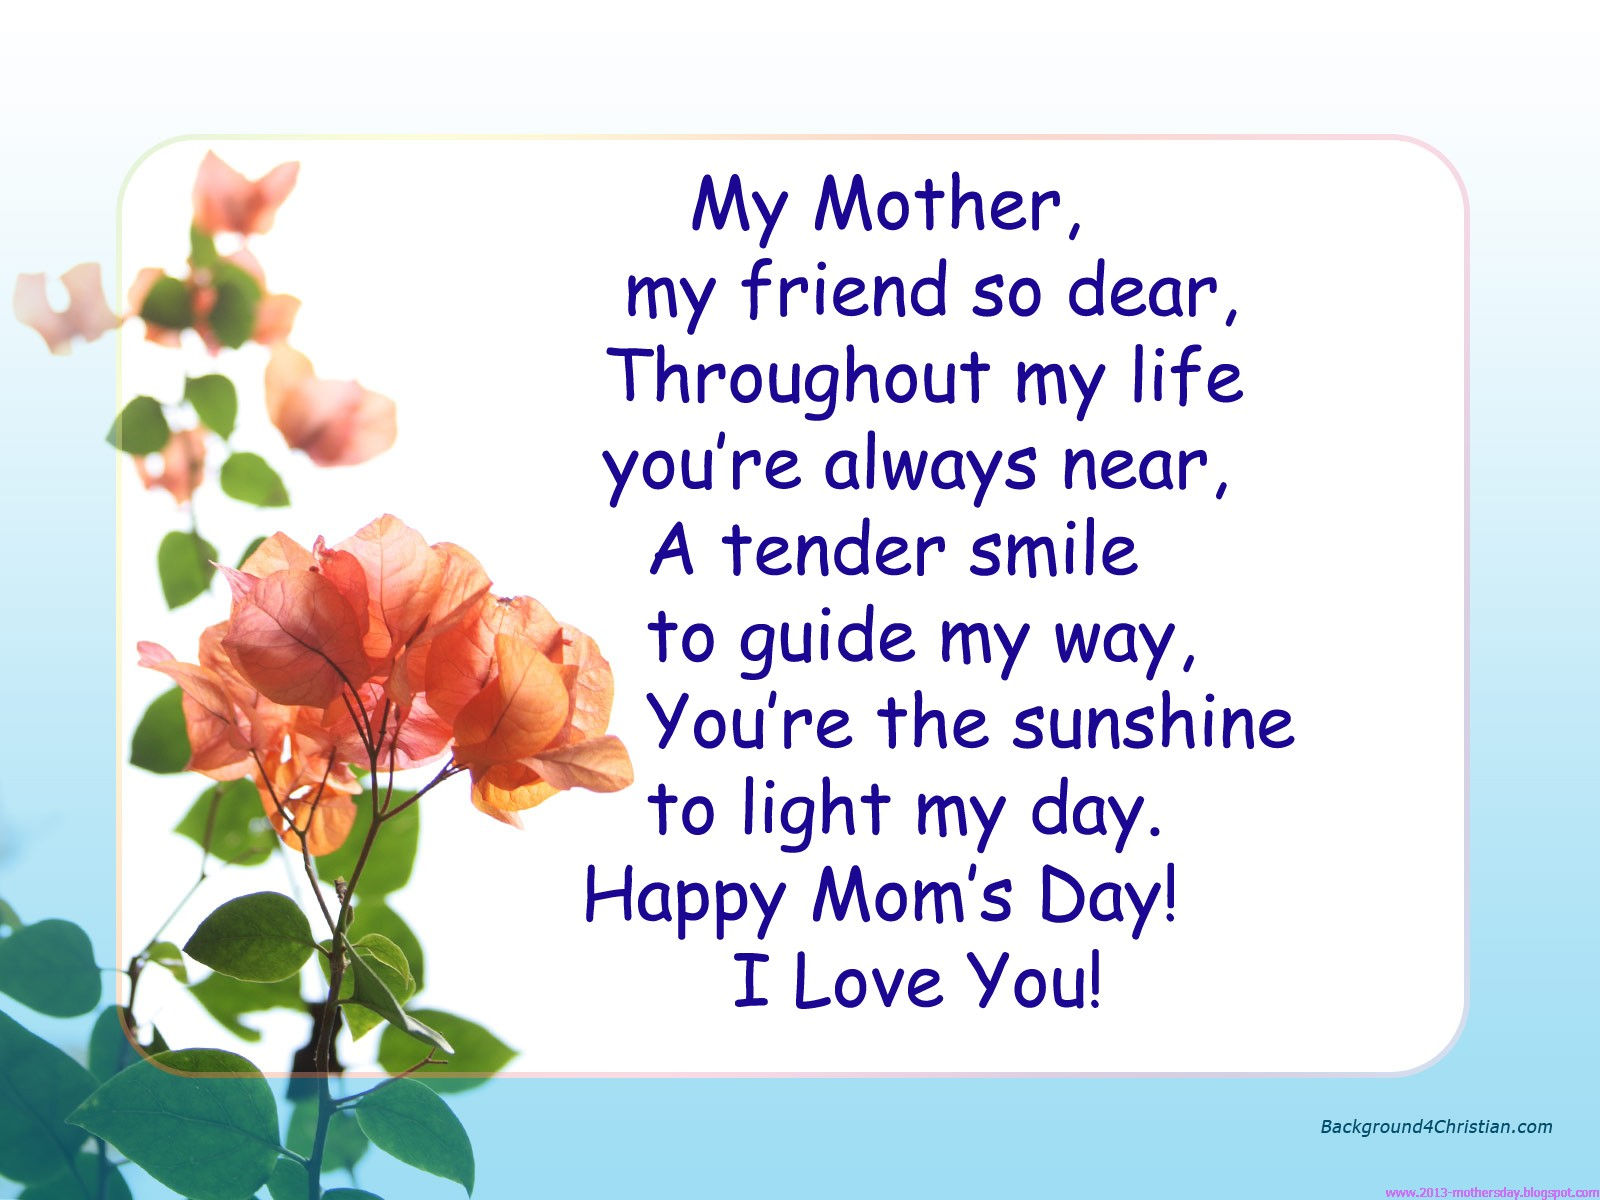 """ My Mother My Friend So Dear, Throughout My Life You're Always Near, A Tender Smile To Guide My Way. You're The Sunshine To Light My Day. Happy Mom's Day! I Love You """